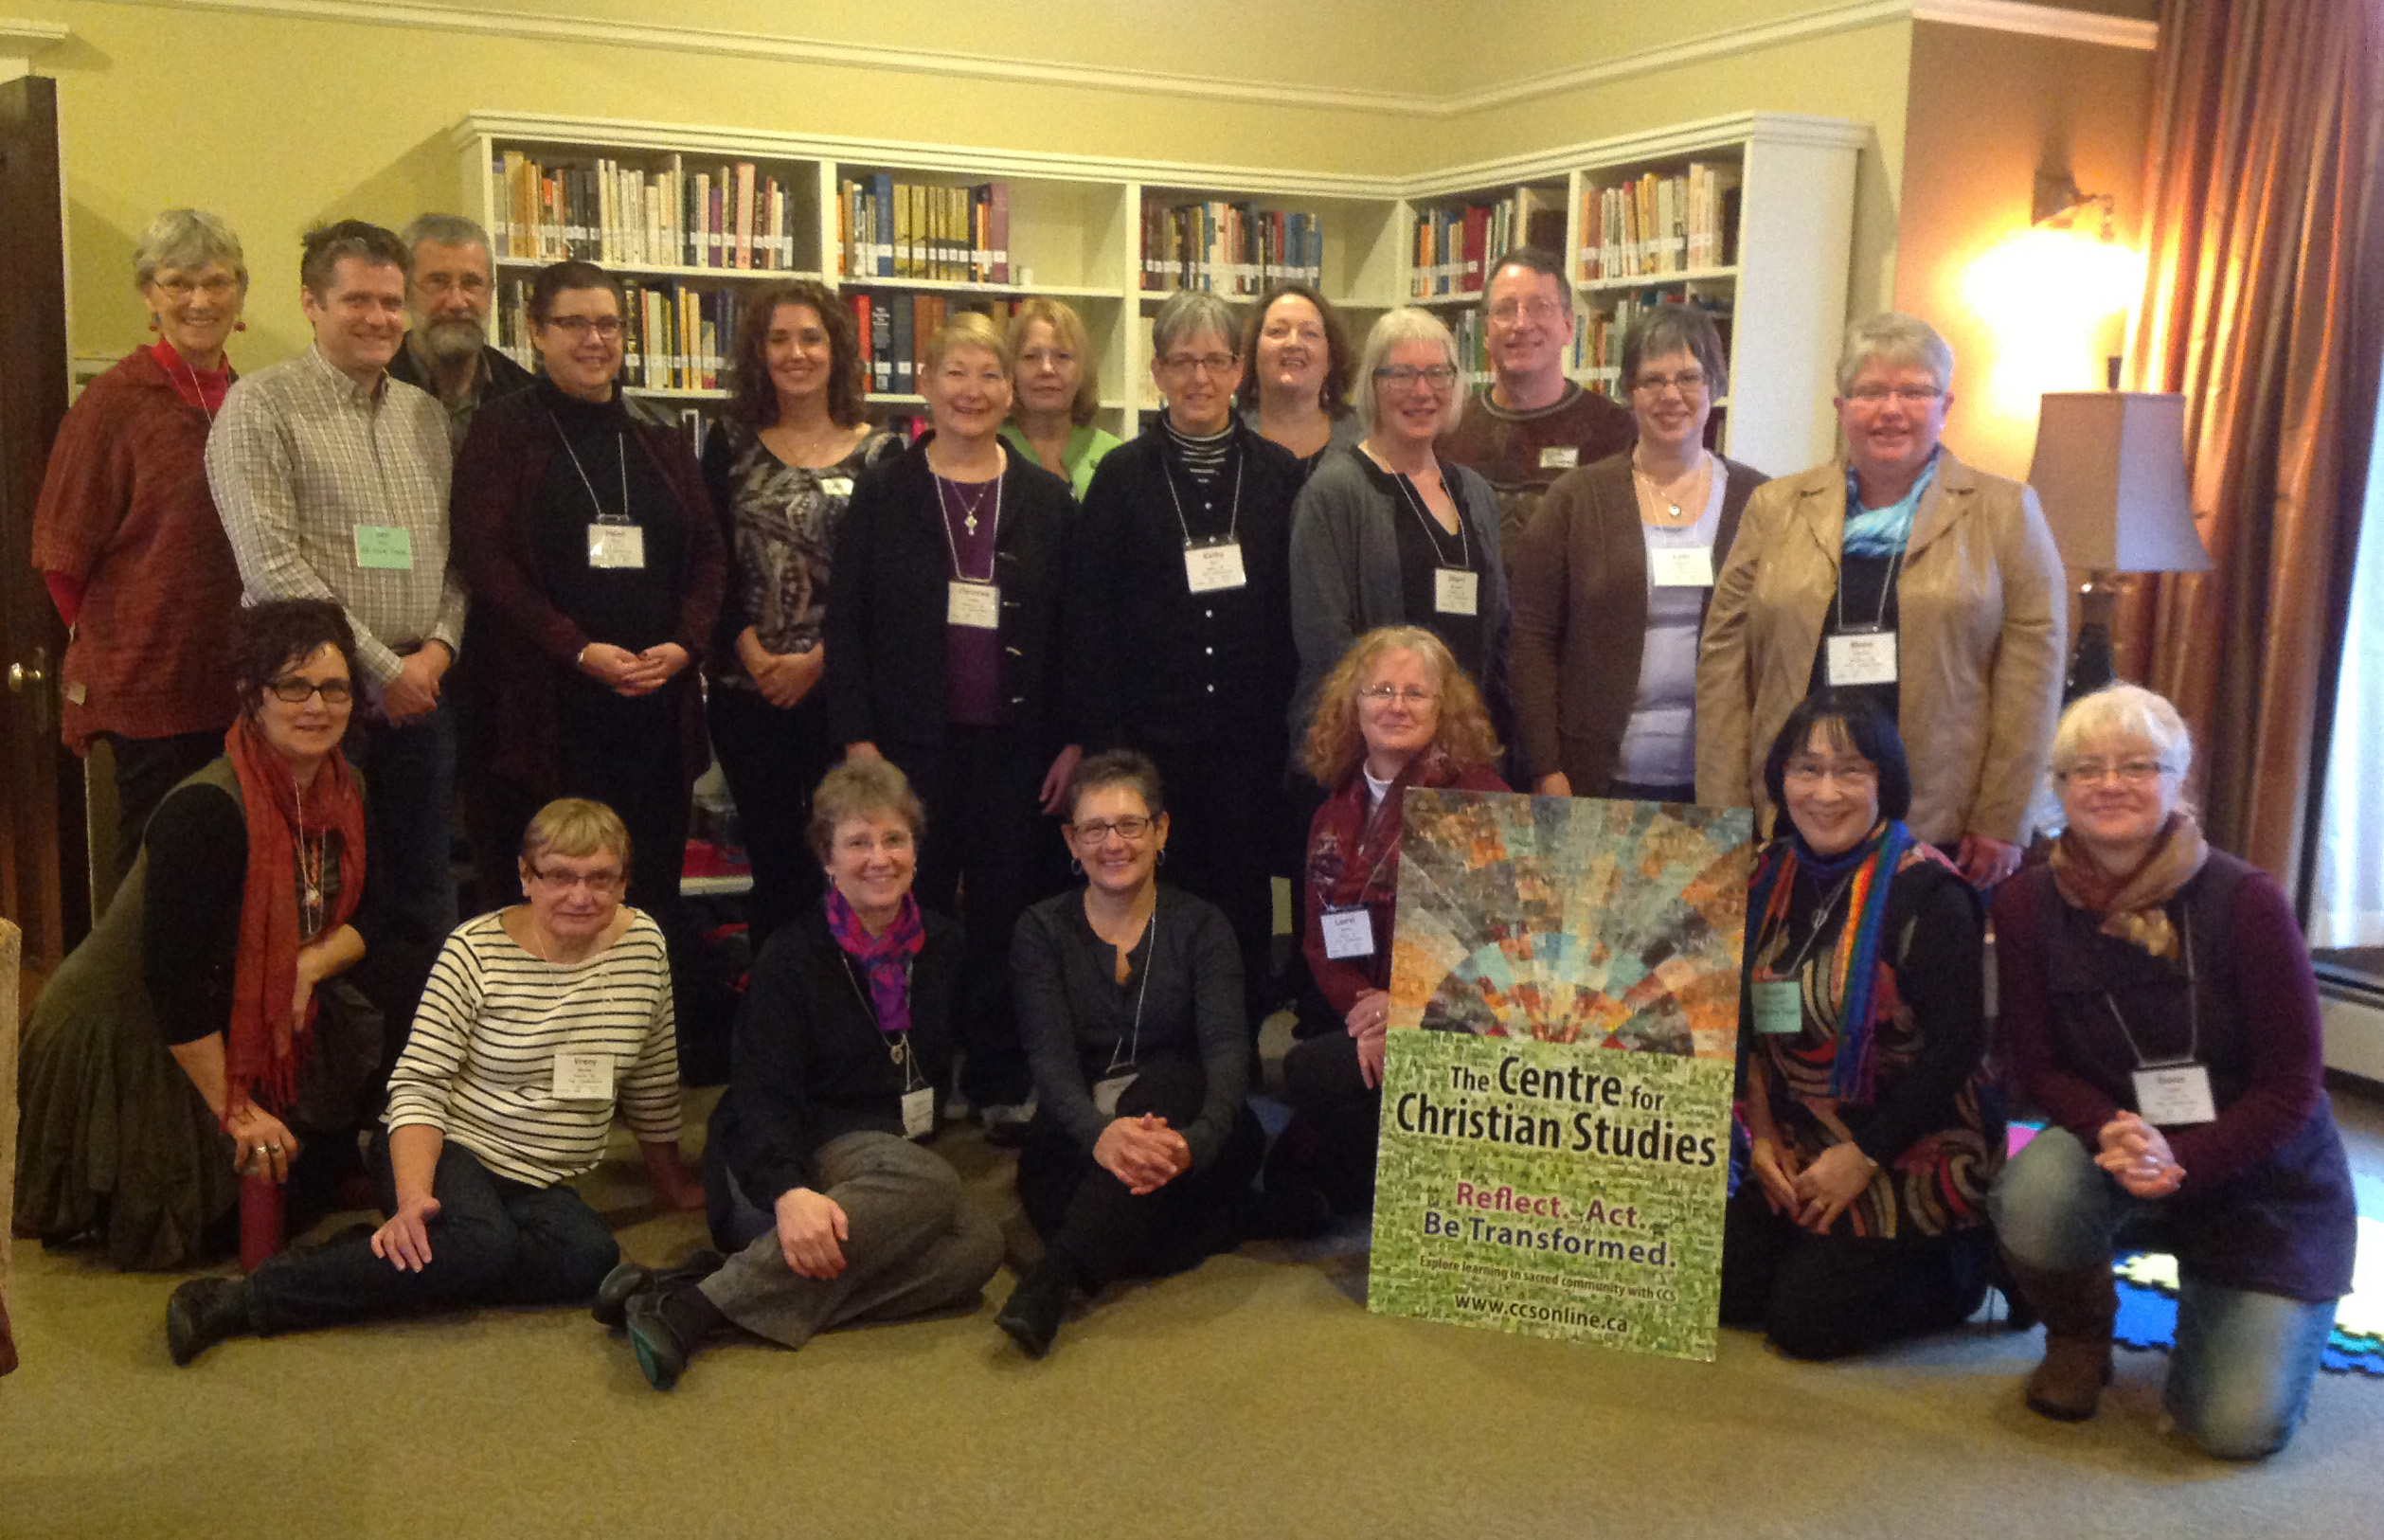 Gathering of CCS friends at Epiphany Explorations in Victoria.